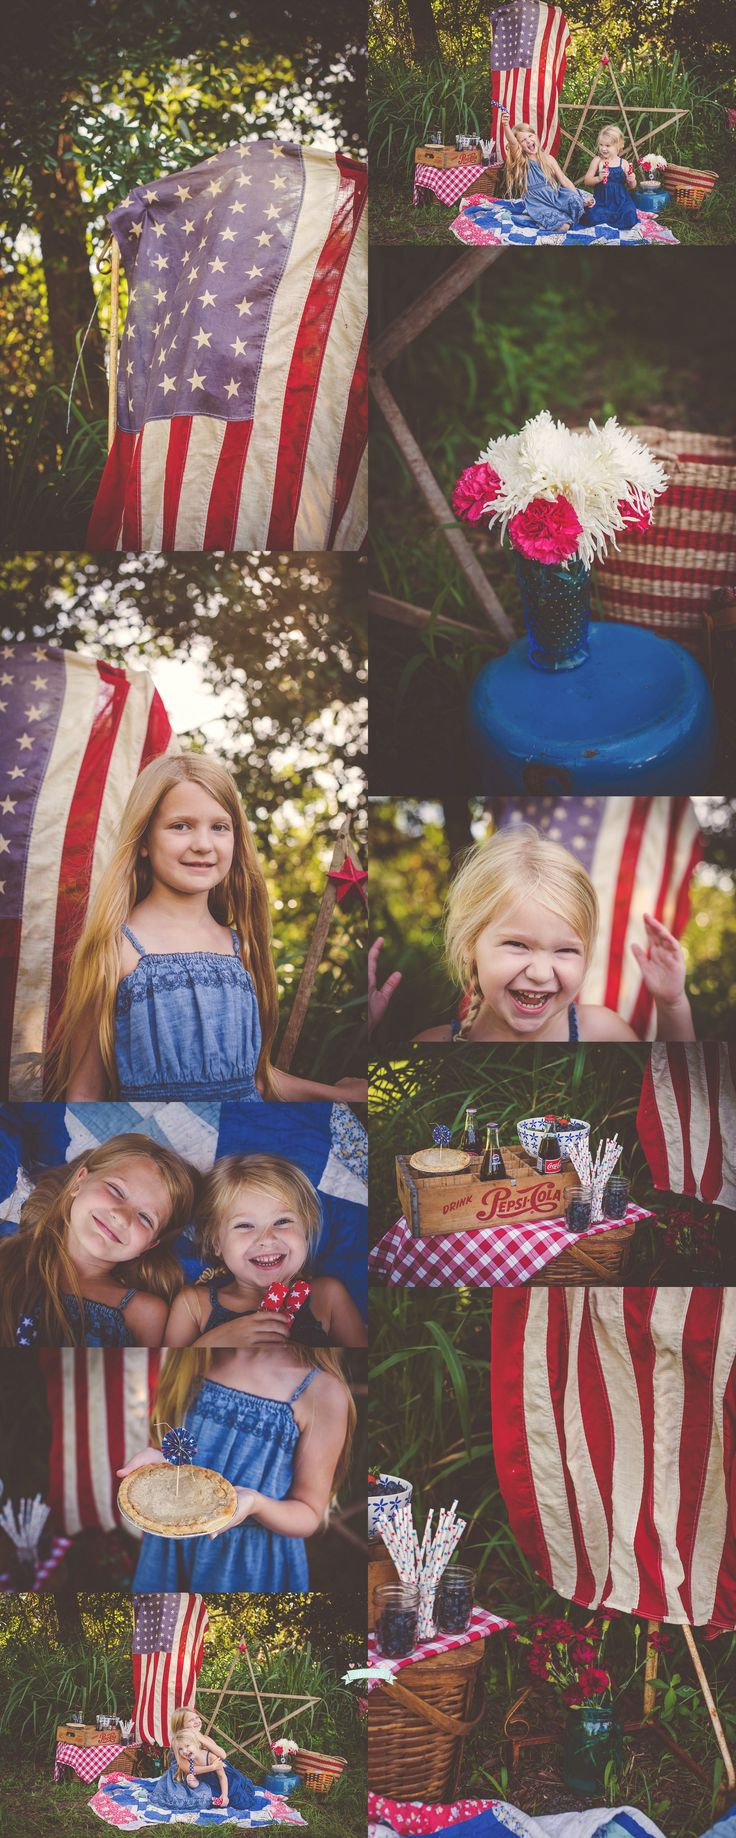 American Mini Session by Tara Merkler Photography in Central Florida